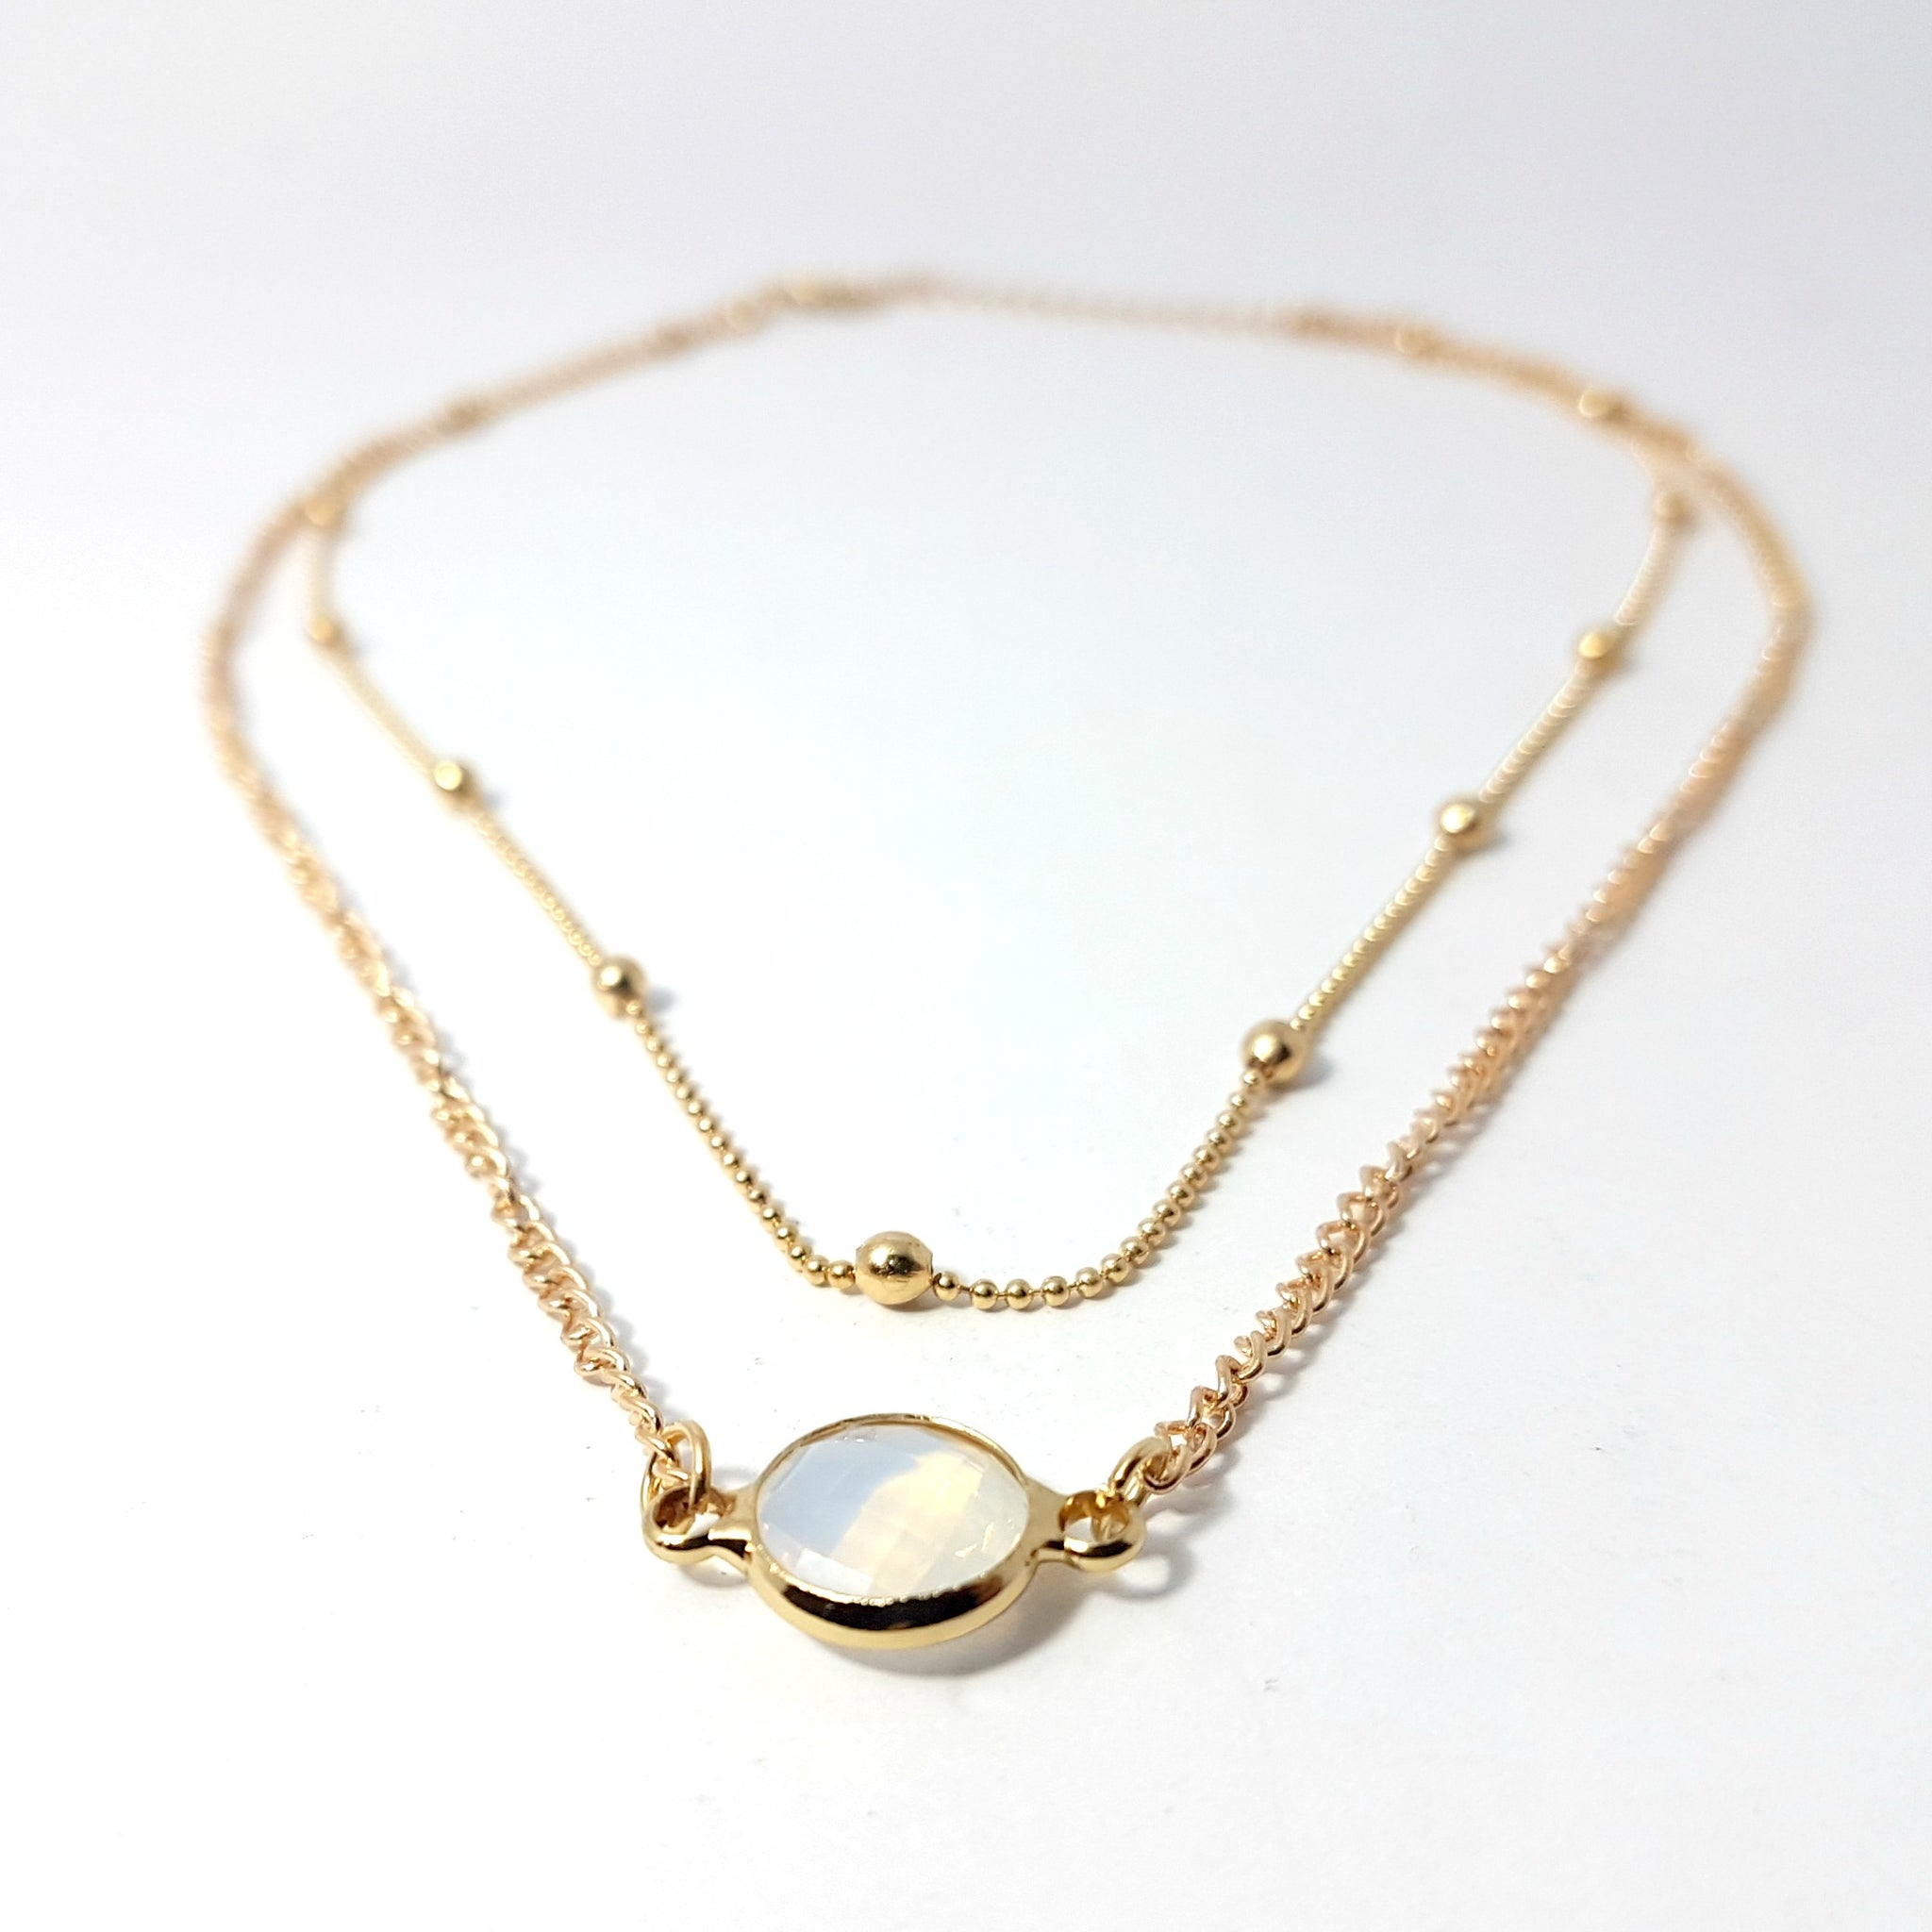 bp necklace tier women c necklaces nordstrom s